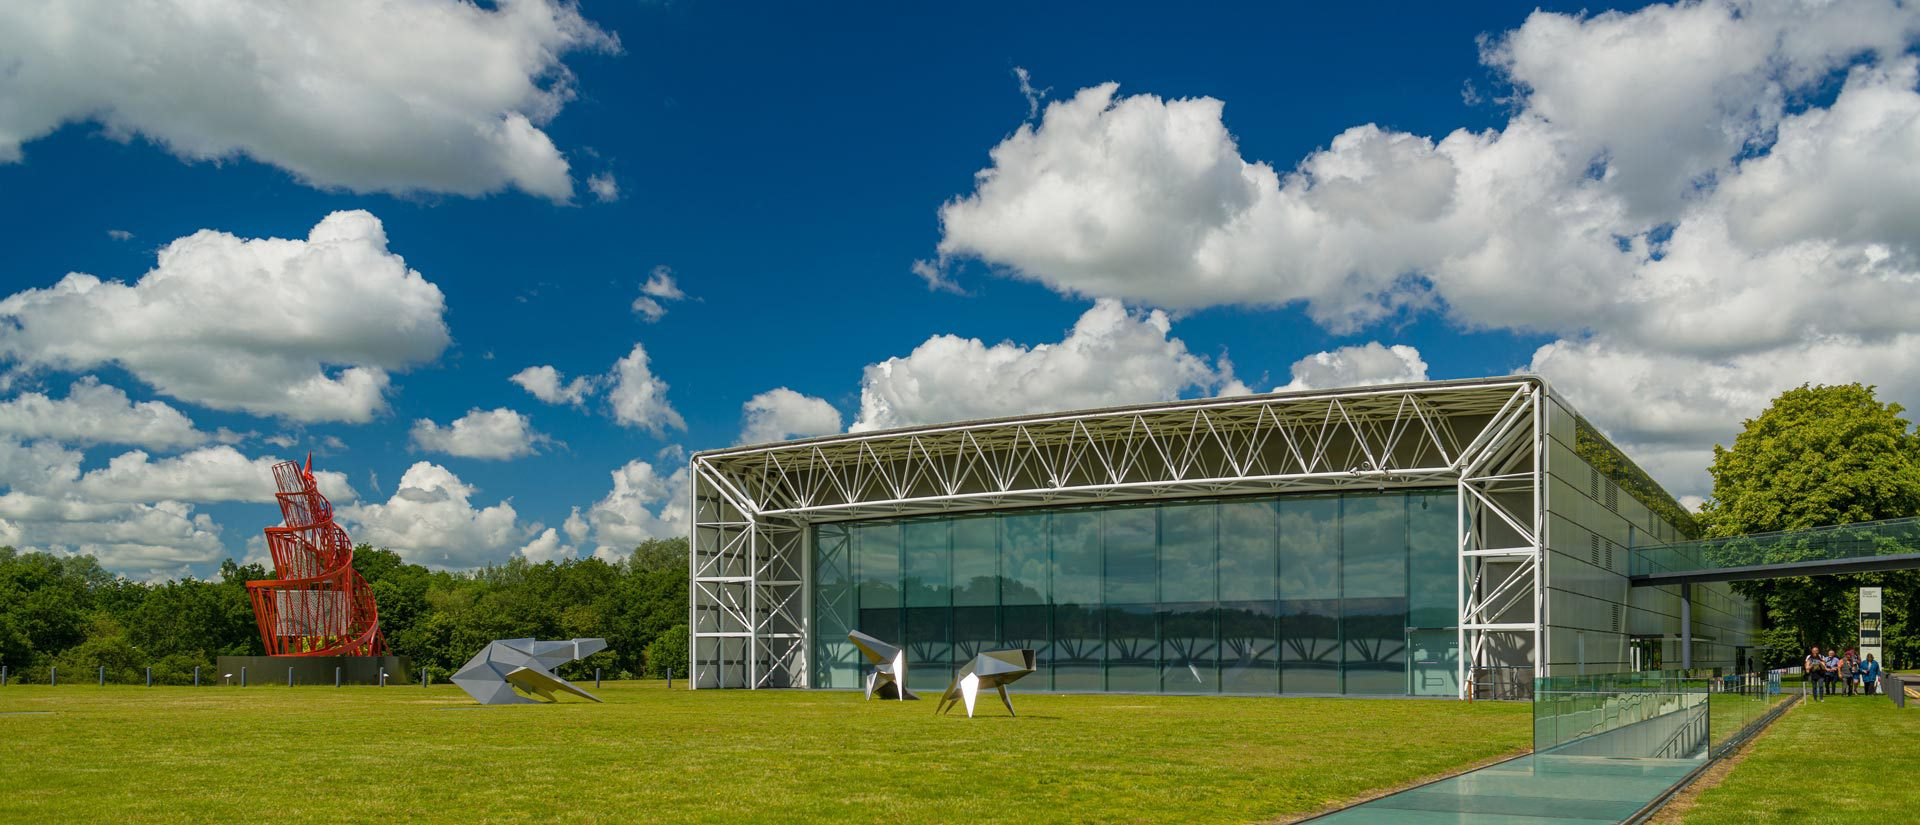 Sainsbury_Centre_East_end_exterior_with_-Beasts_sculptures_and_Tatlins_Tower_photo_Andy_Crouch